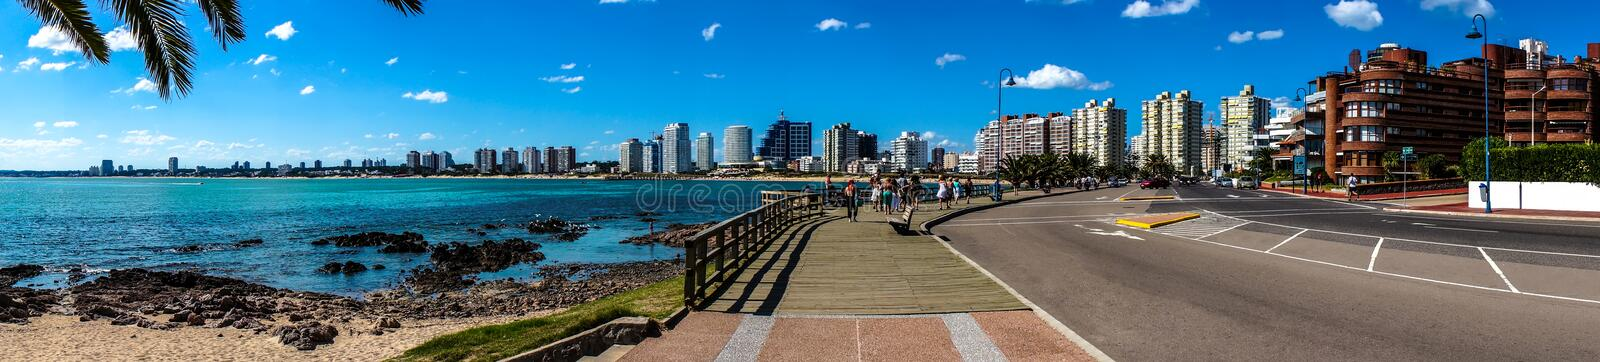 Panoramic Beach and City royalty free stock photos